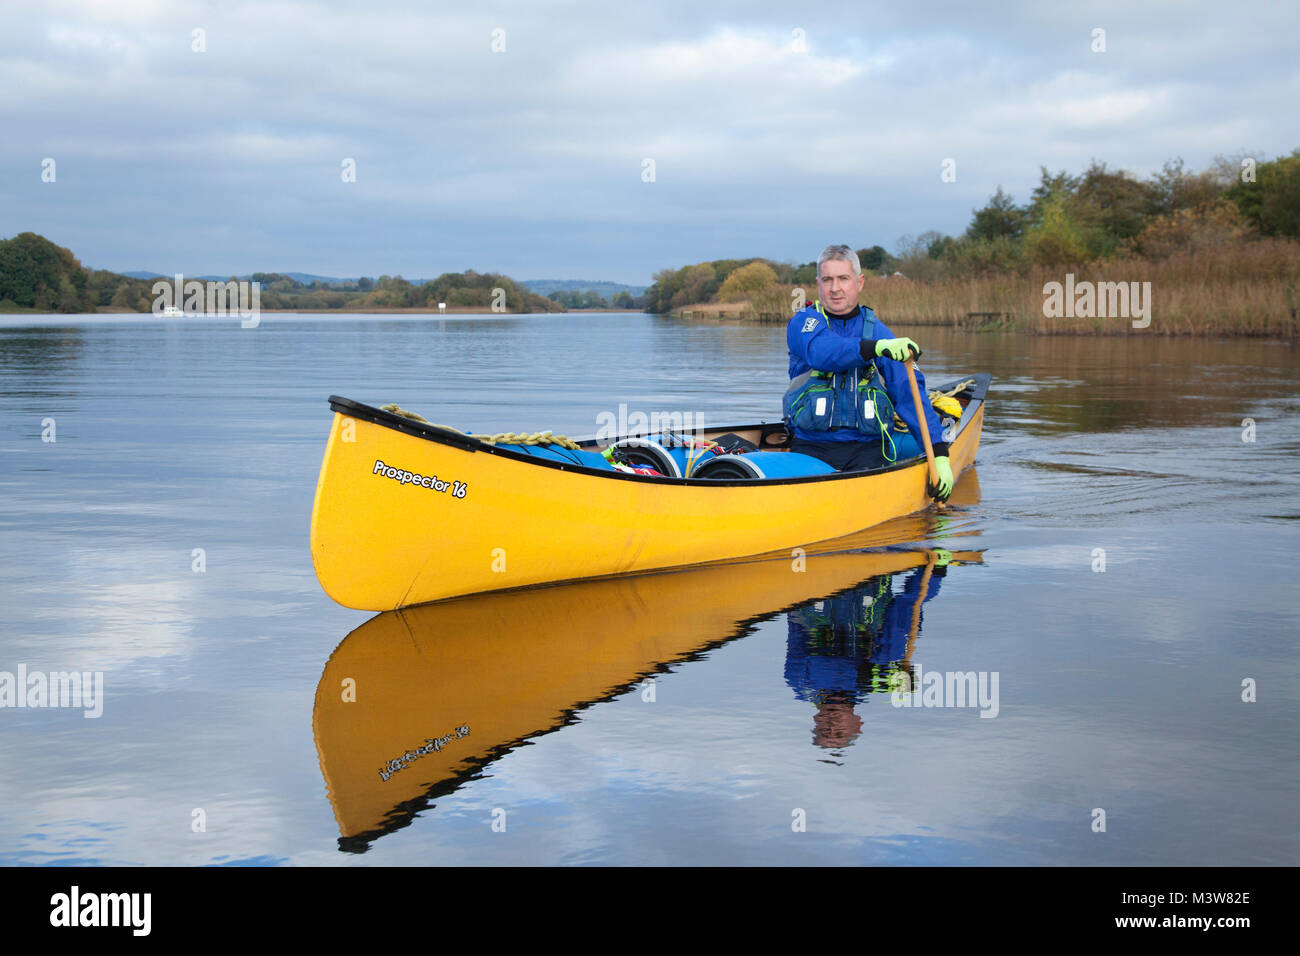 Canoeing near Bellanaleck, Upper Lough Erne, County Fermanagh, Northern Ireland. - Stock Image